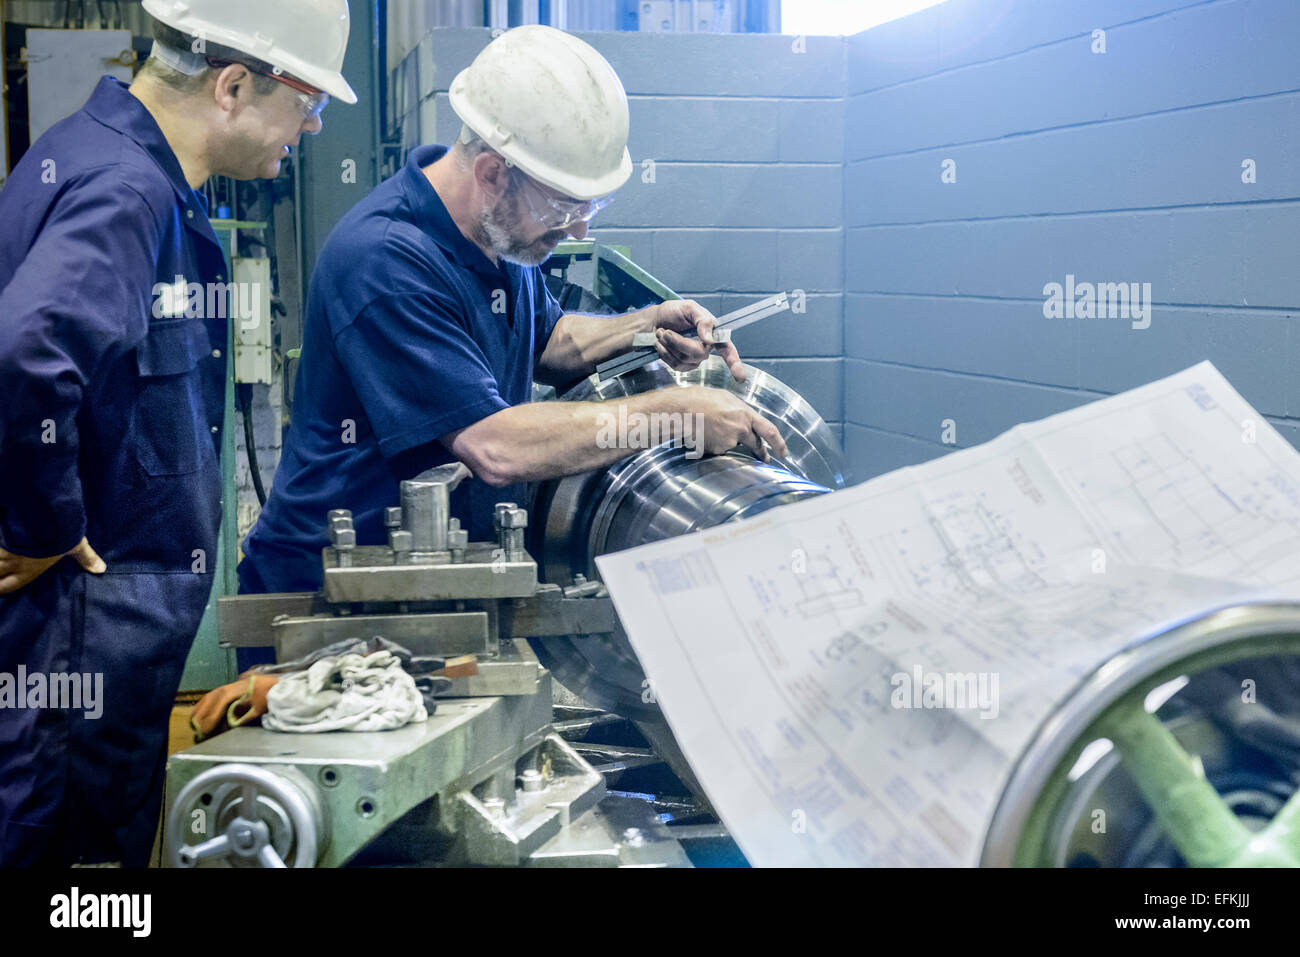 Engineers working on lathe with drawings - Stock Image